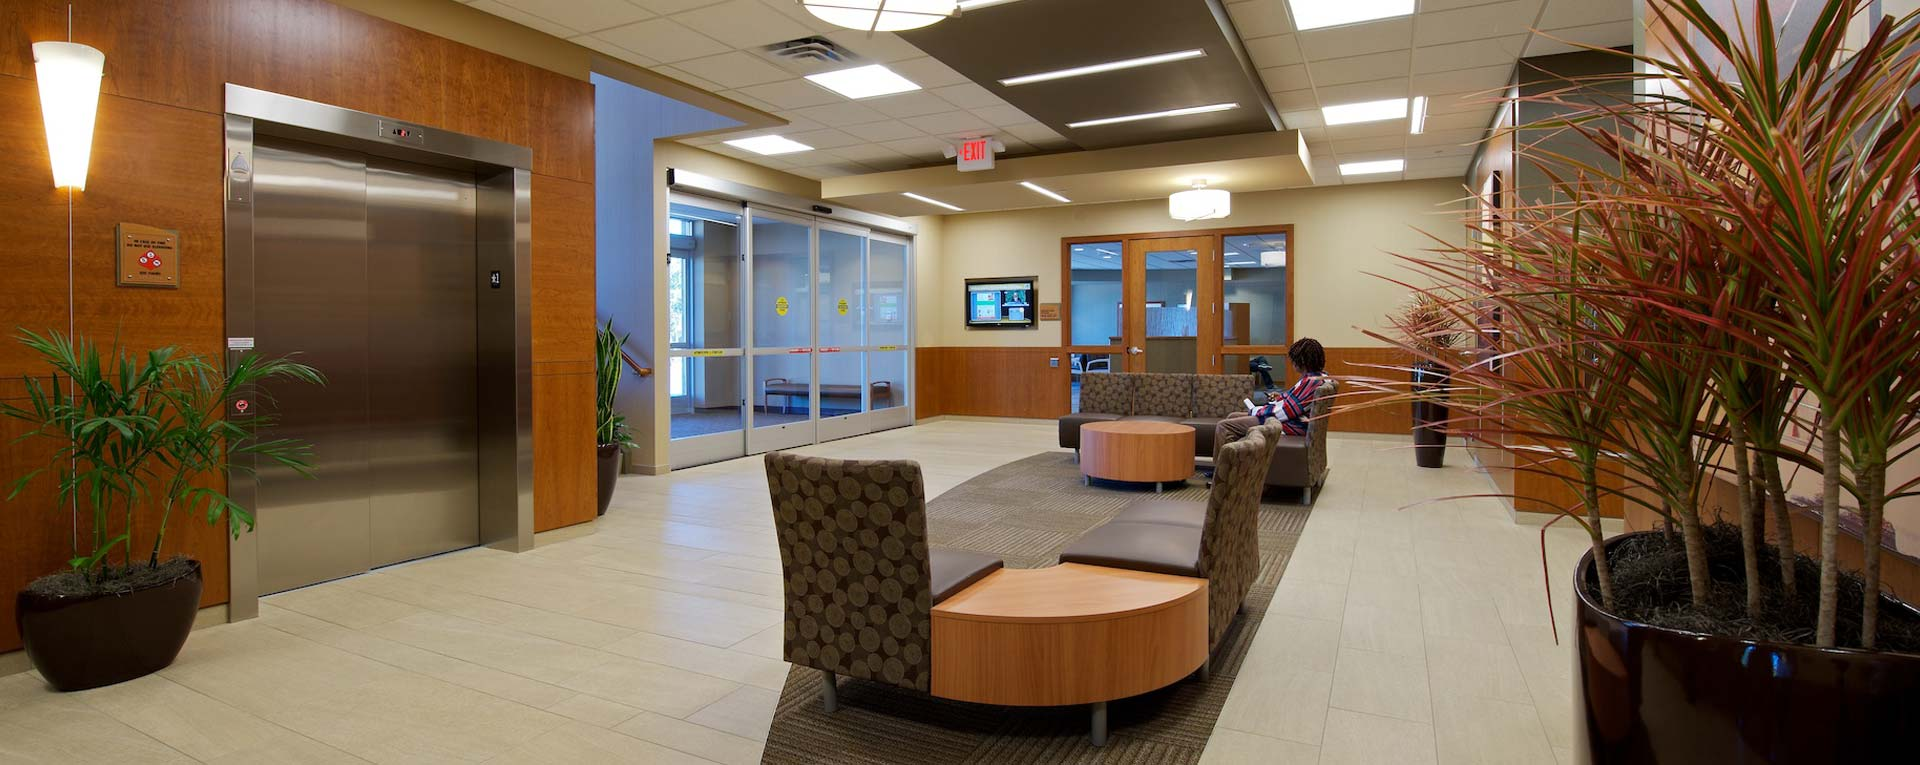 Crystal Medical Center Lobby